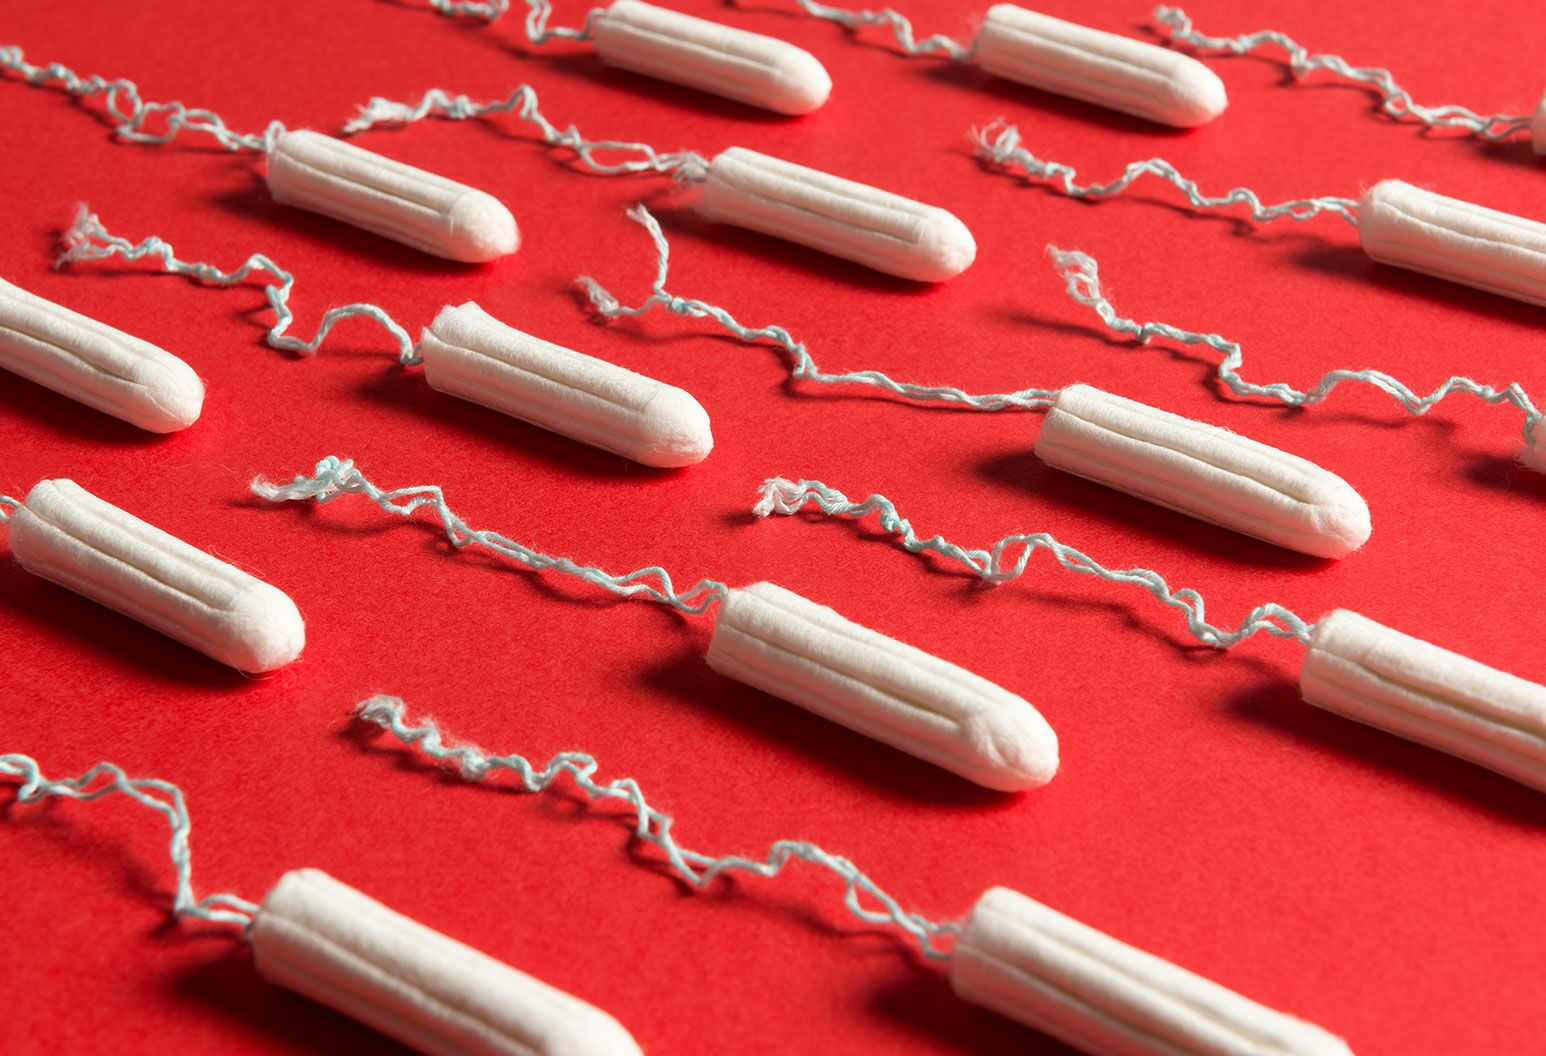 rows of white tampons laid over a red surface.